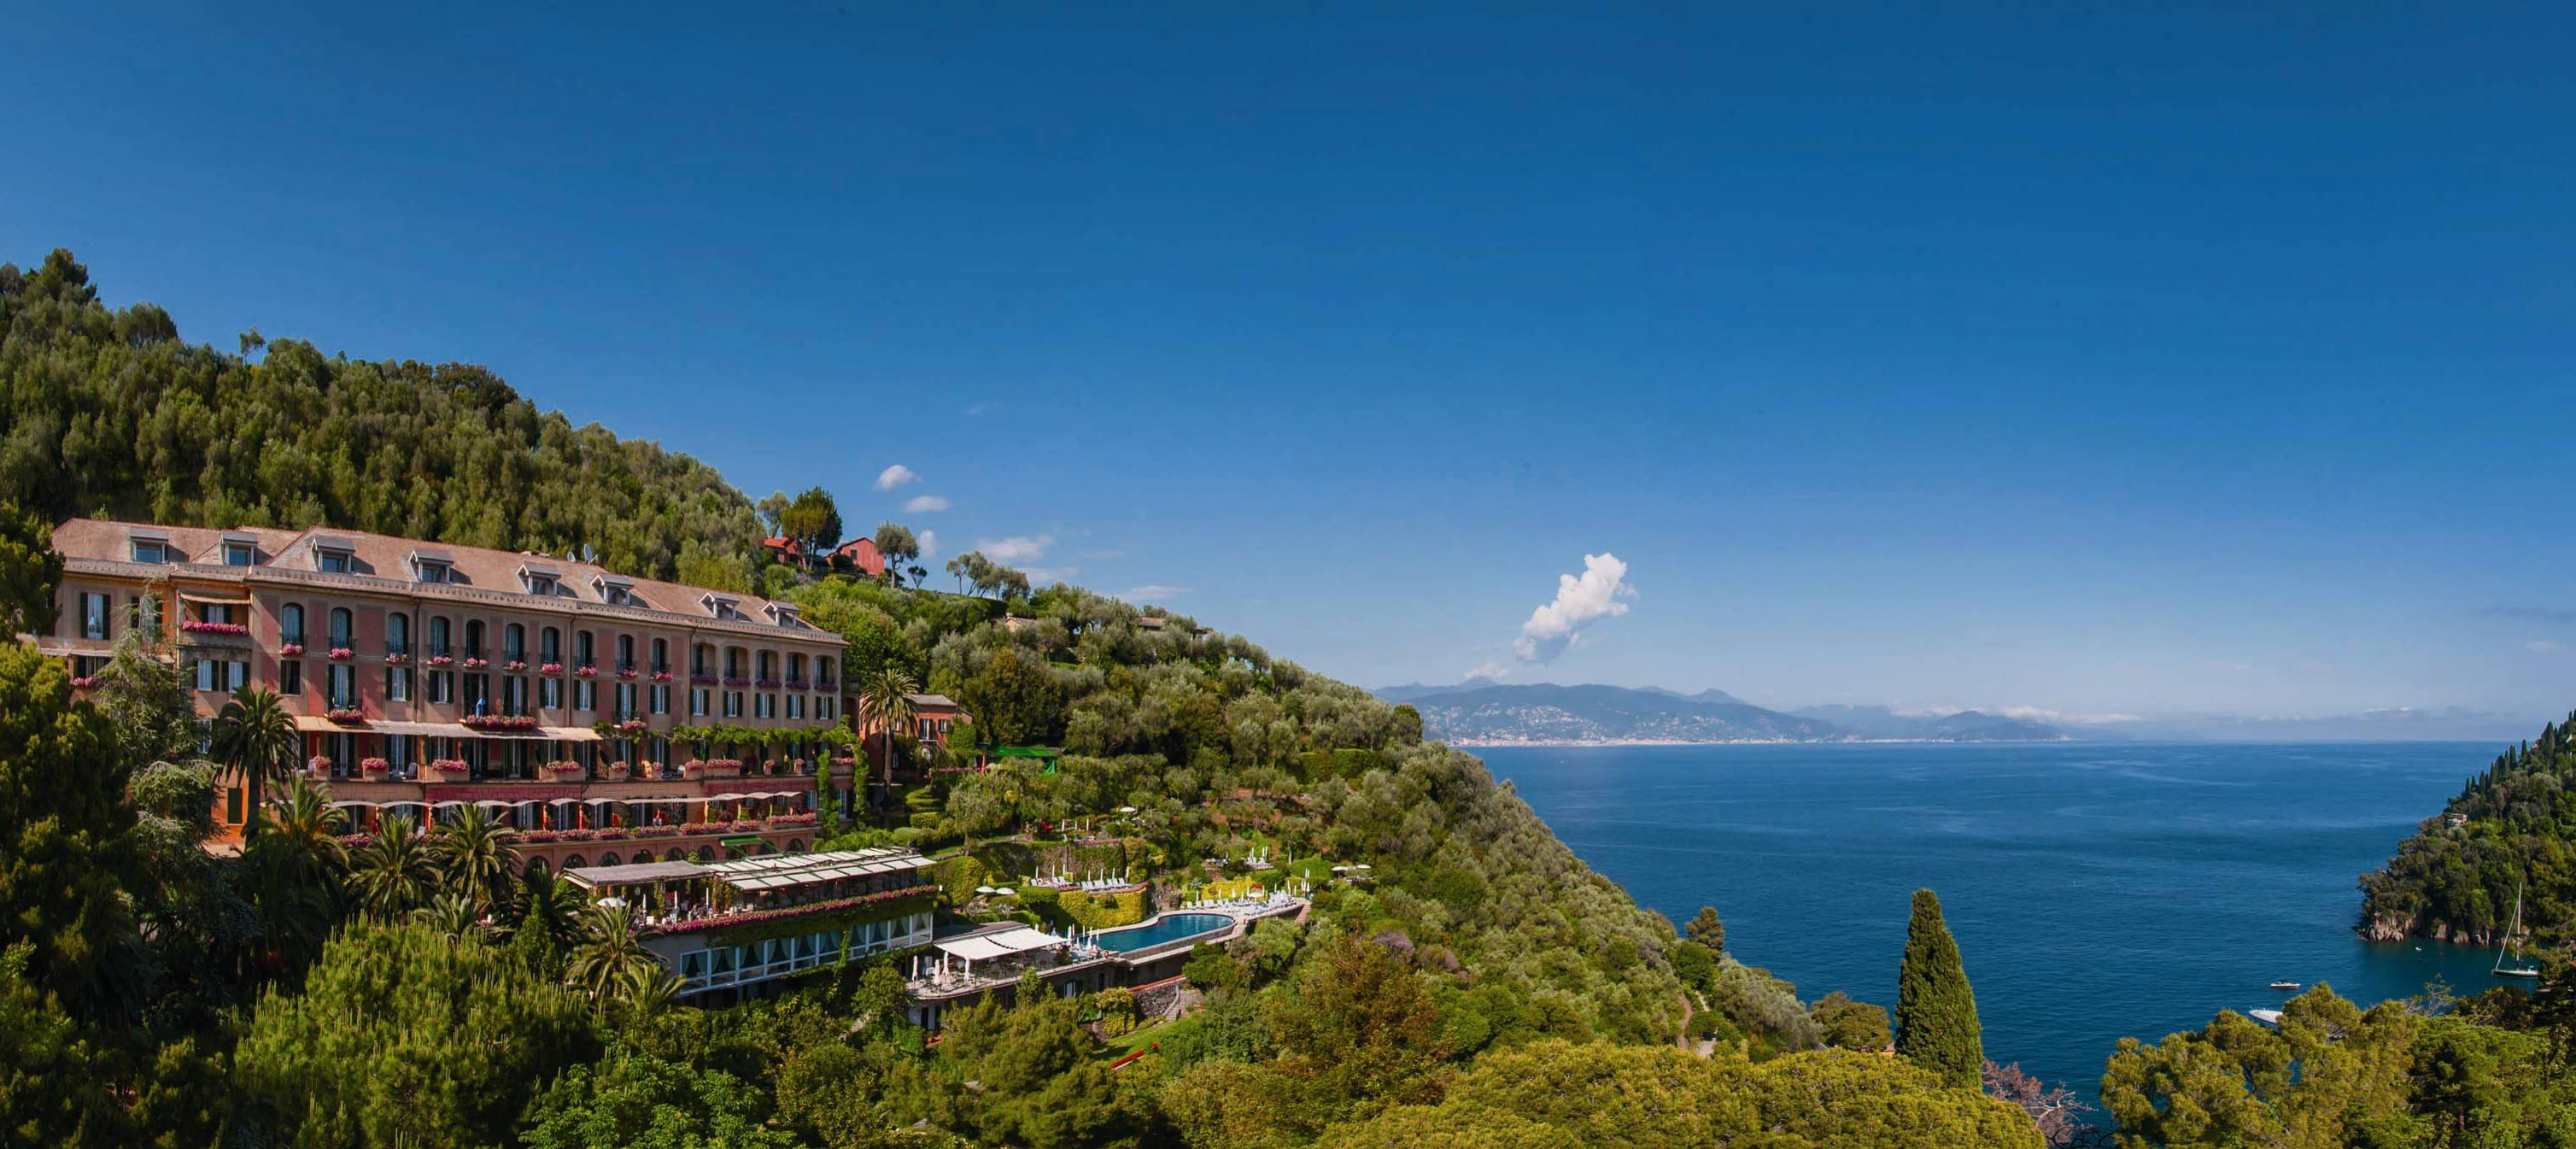 Cinque terre the most romantic hotels for Hotels in cinque terre